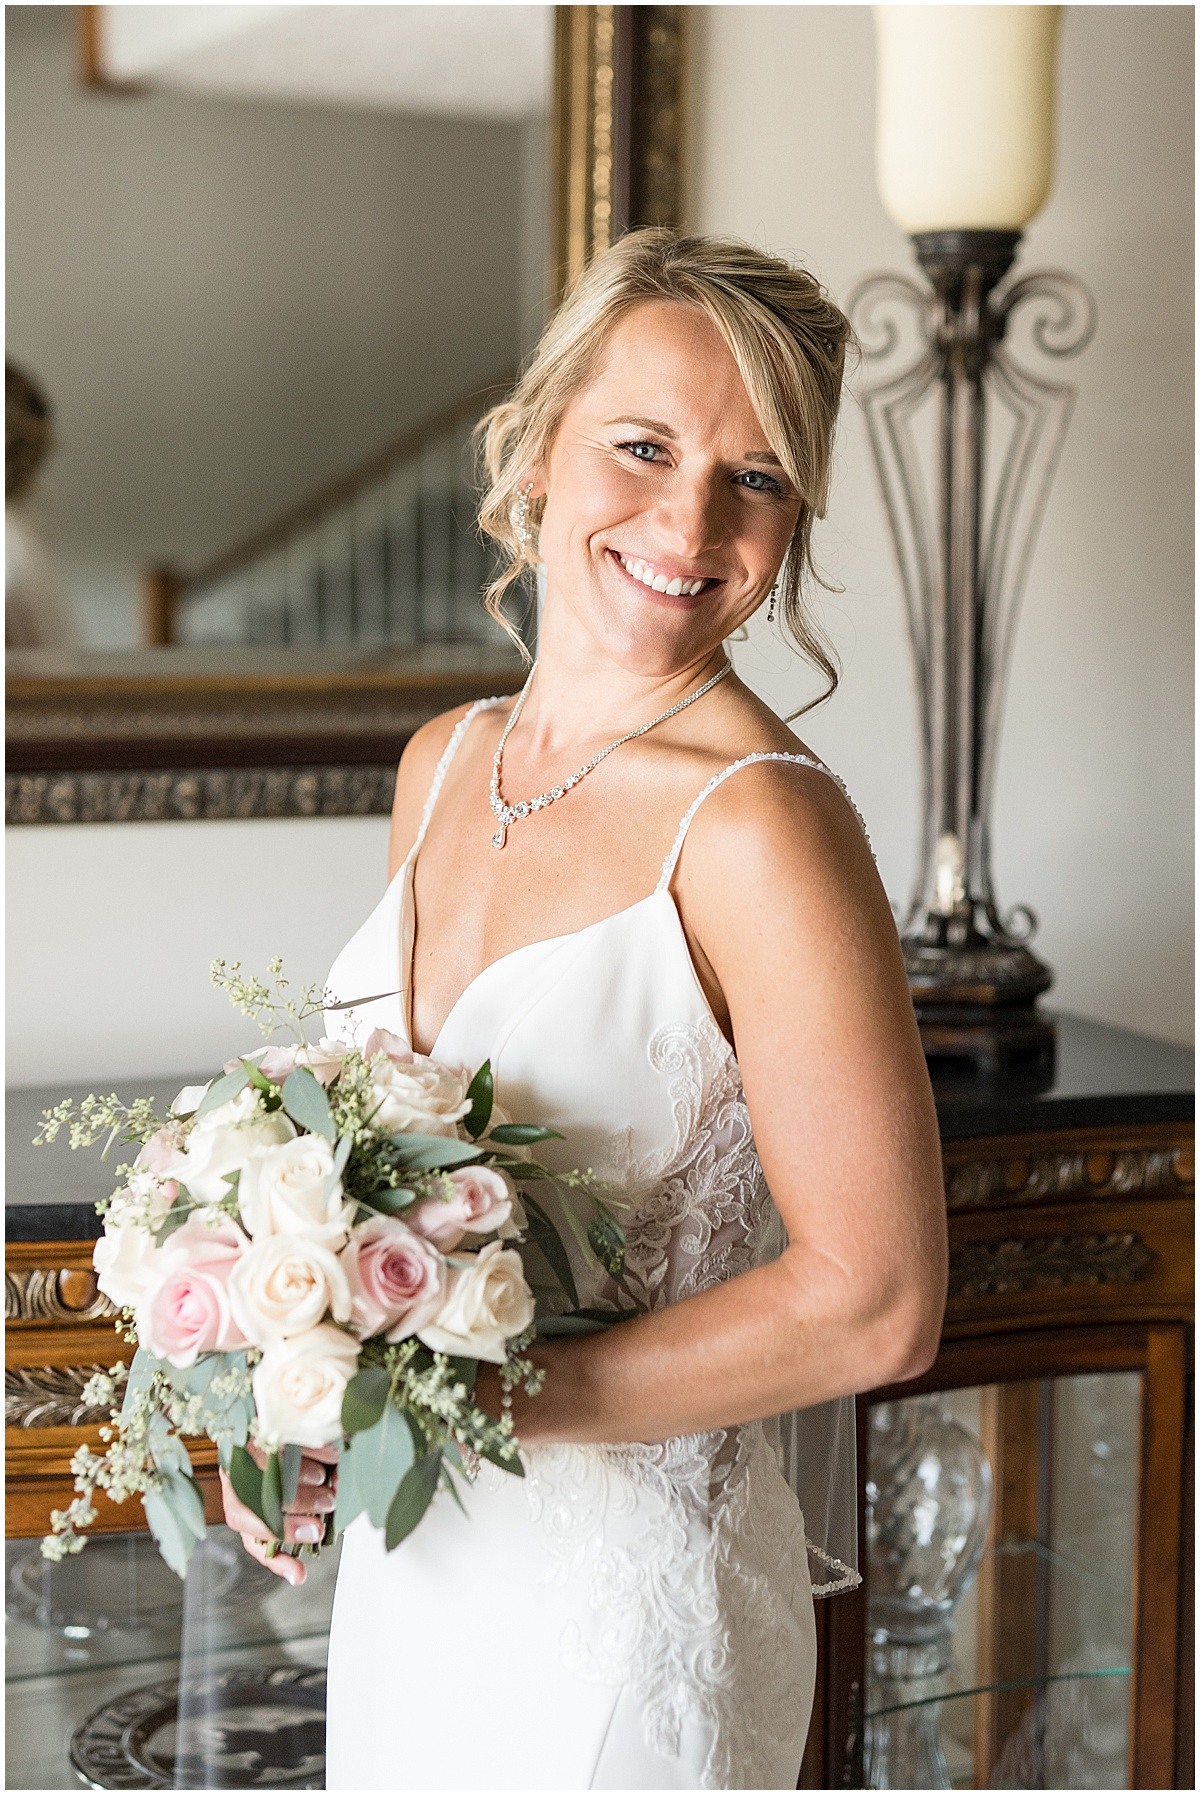 Bride getting ready for wedding at The Edge in Anderson, Indiana